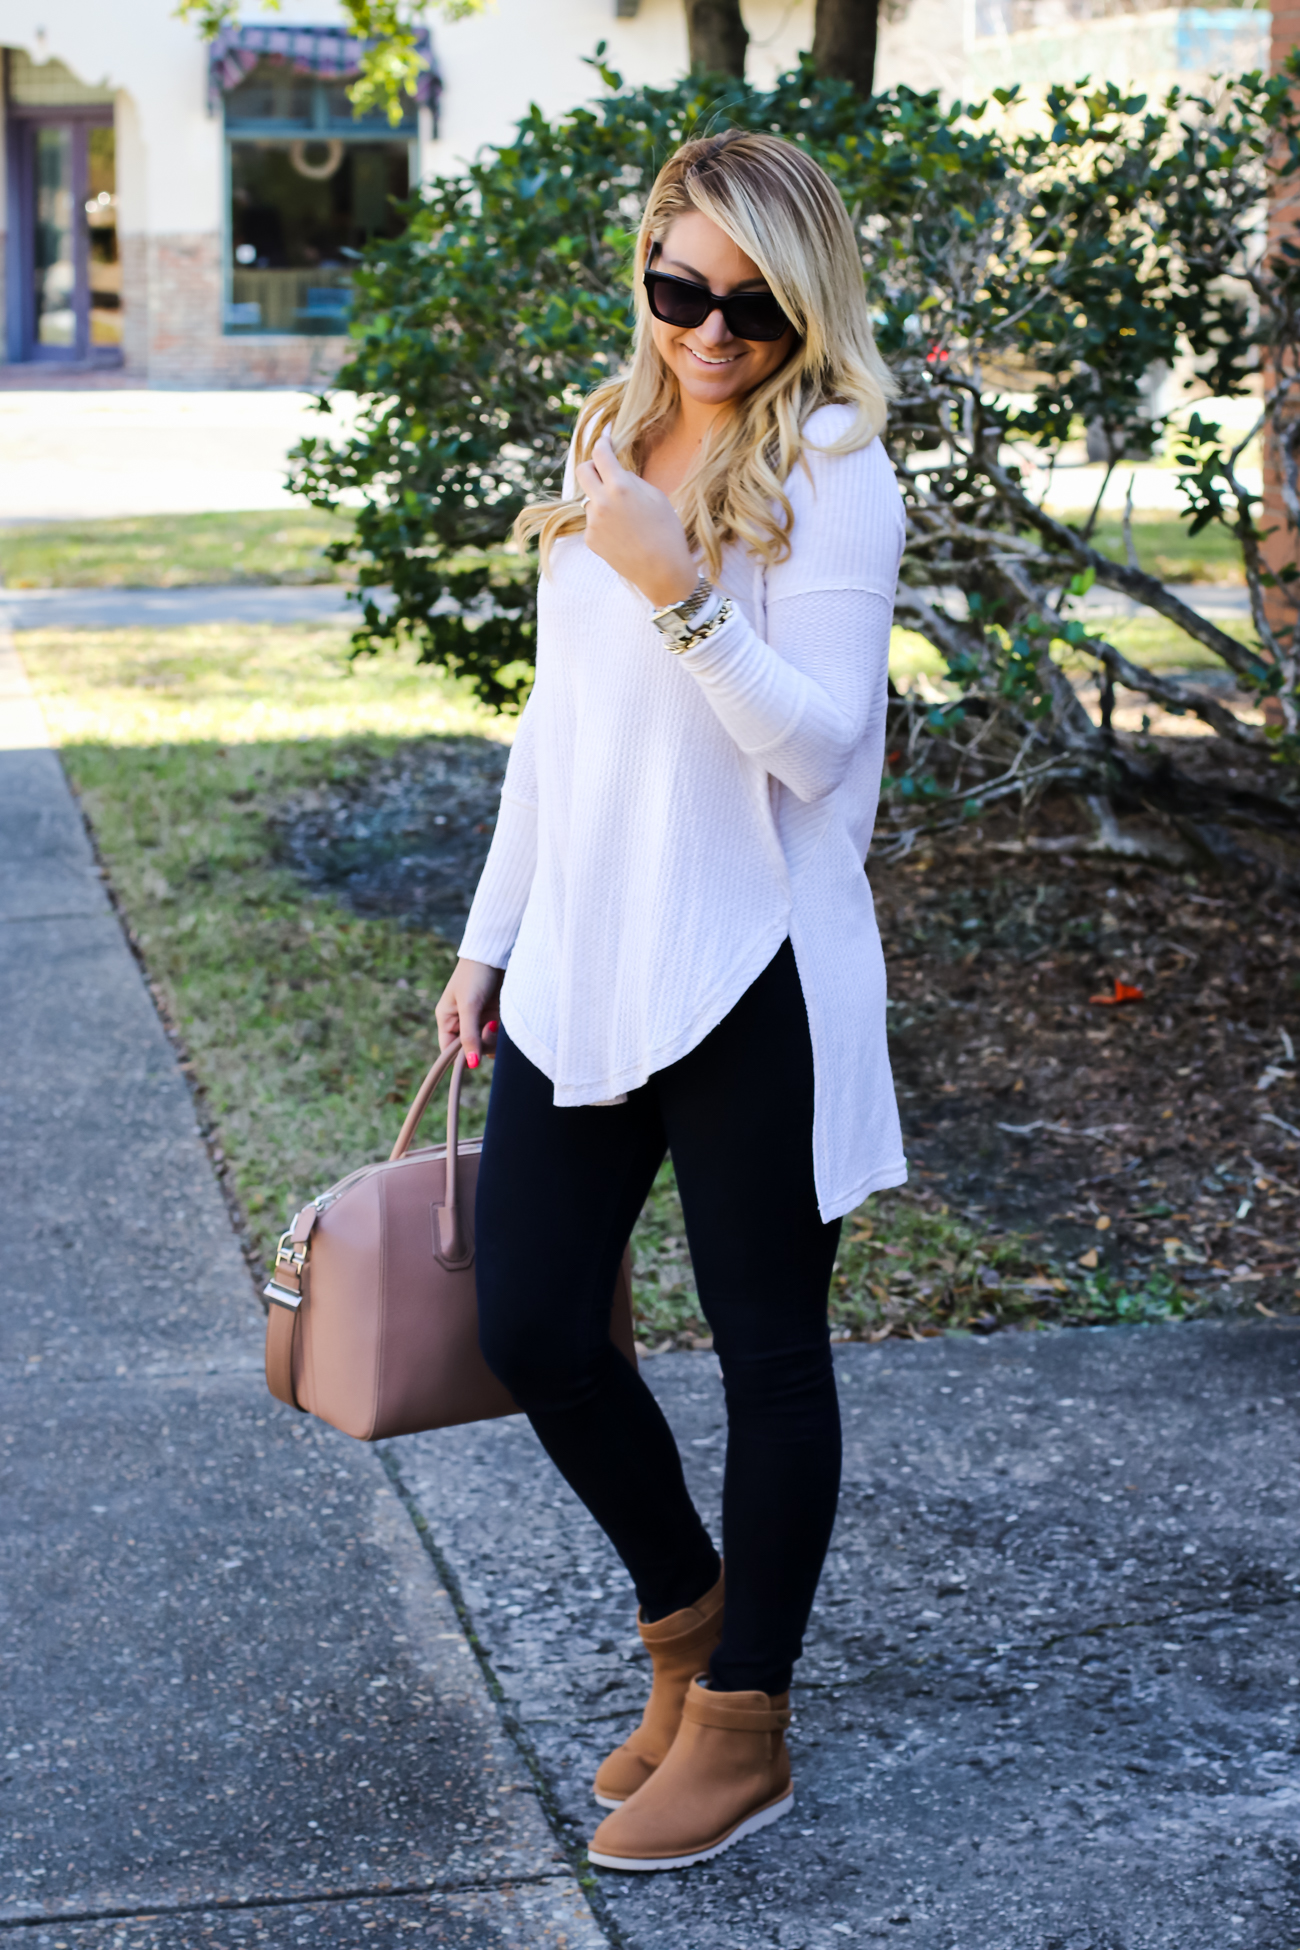 ... outfit ugg rella classic reboot shop dandy a florida based style and beauty blog by danielle